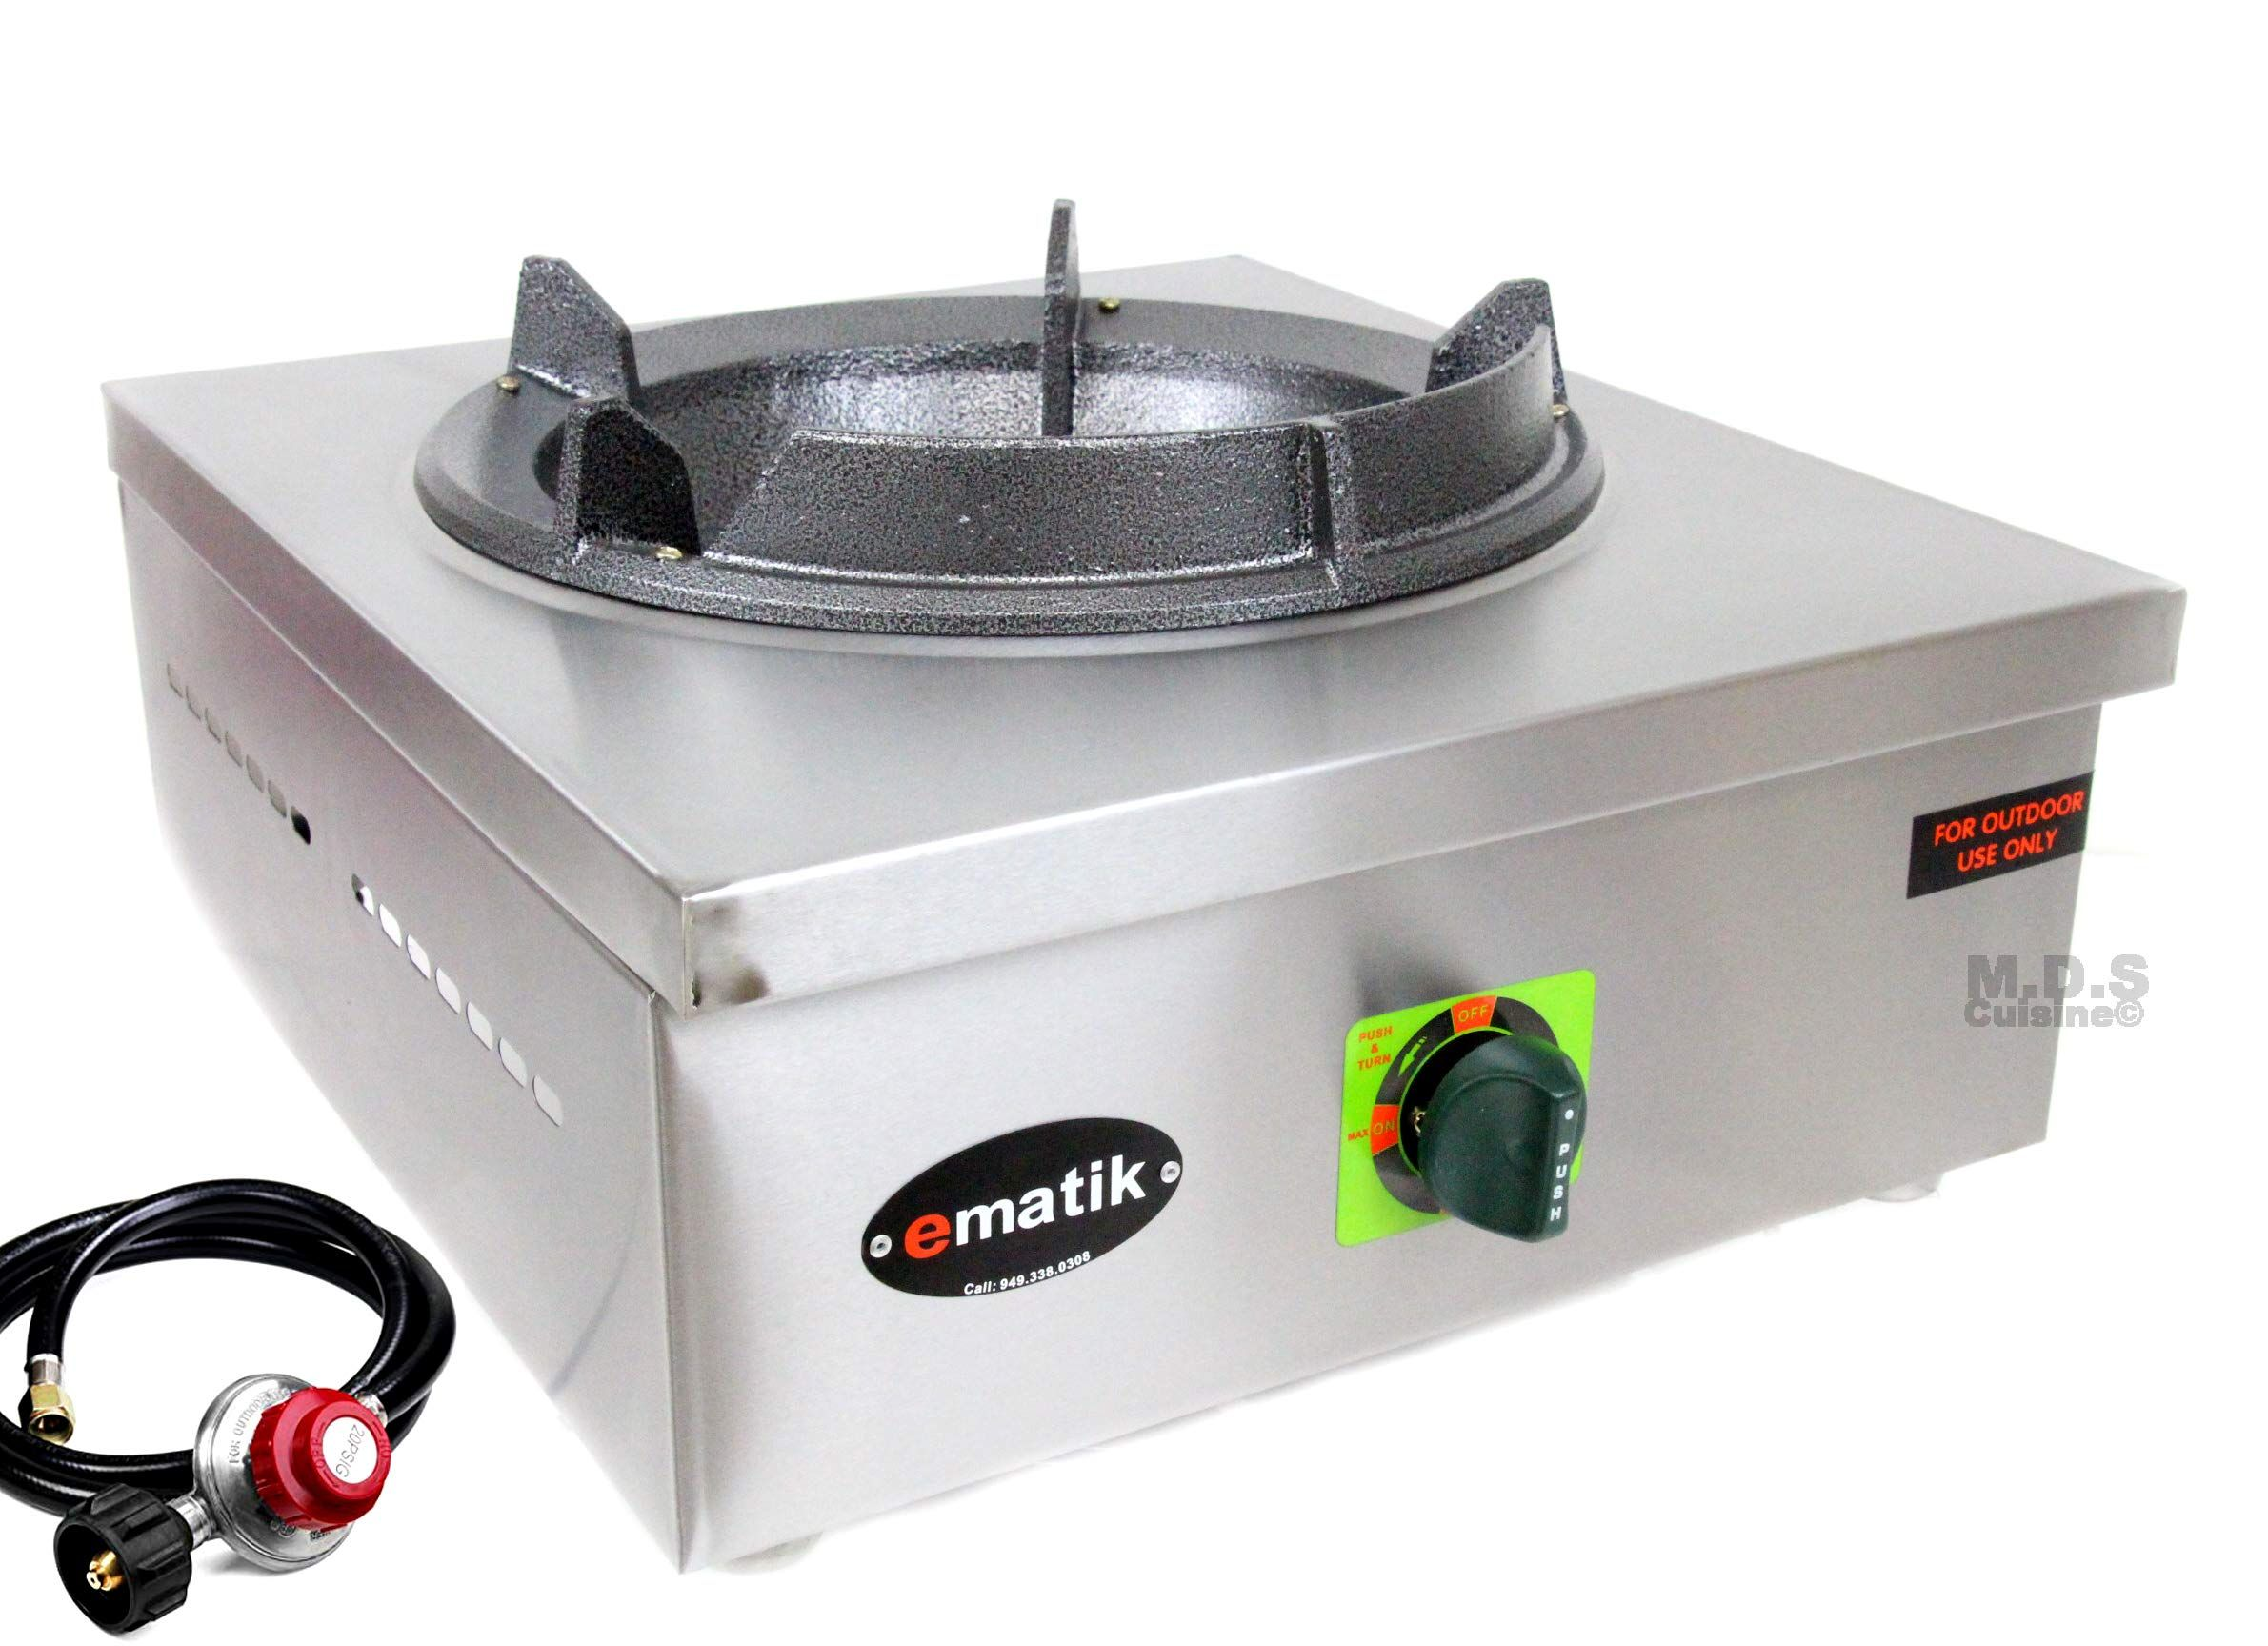 Ematik Burner Countertop High Pressure Stainless Steel Commercial